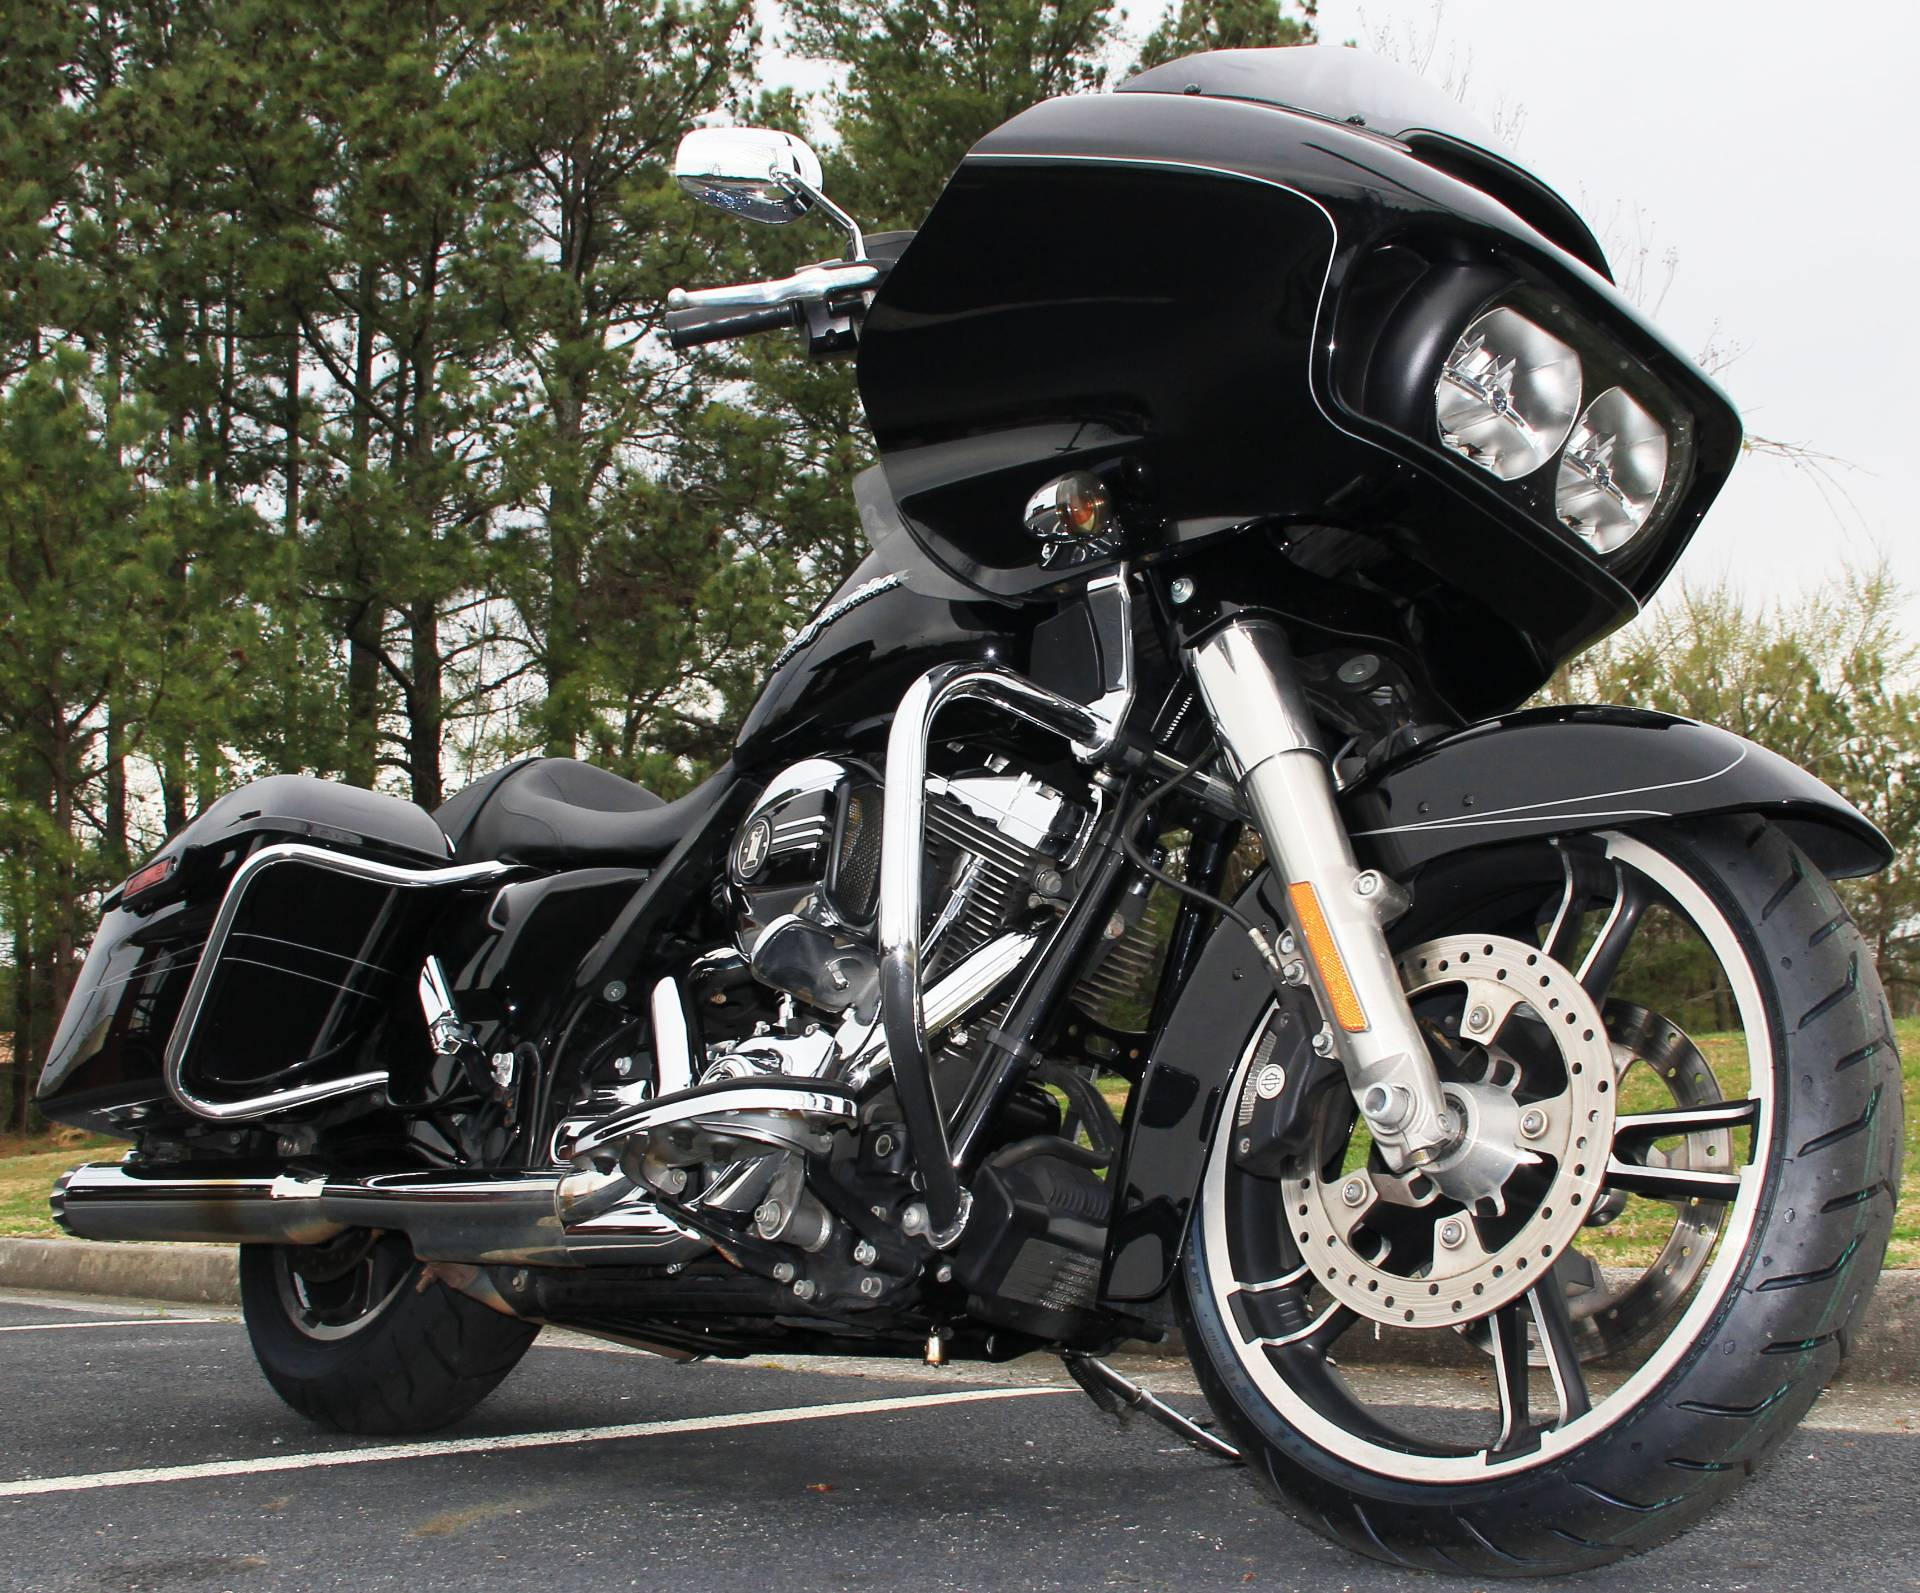 2015 Harley-Davidson Road Glide Special in Cartersville, Georgia - Photo 2